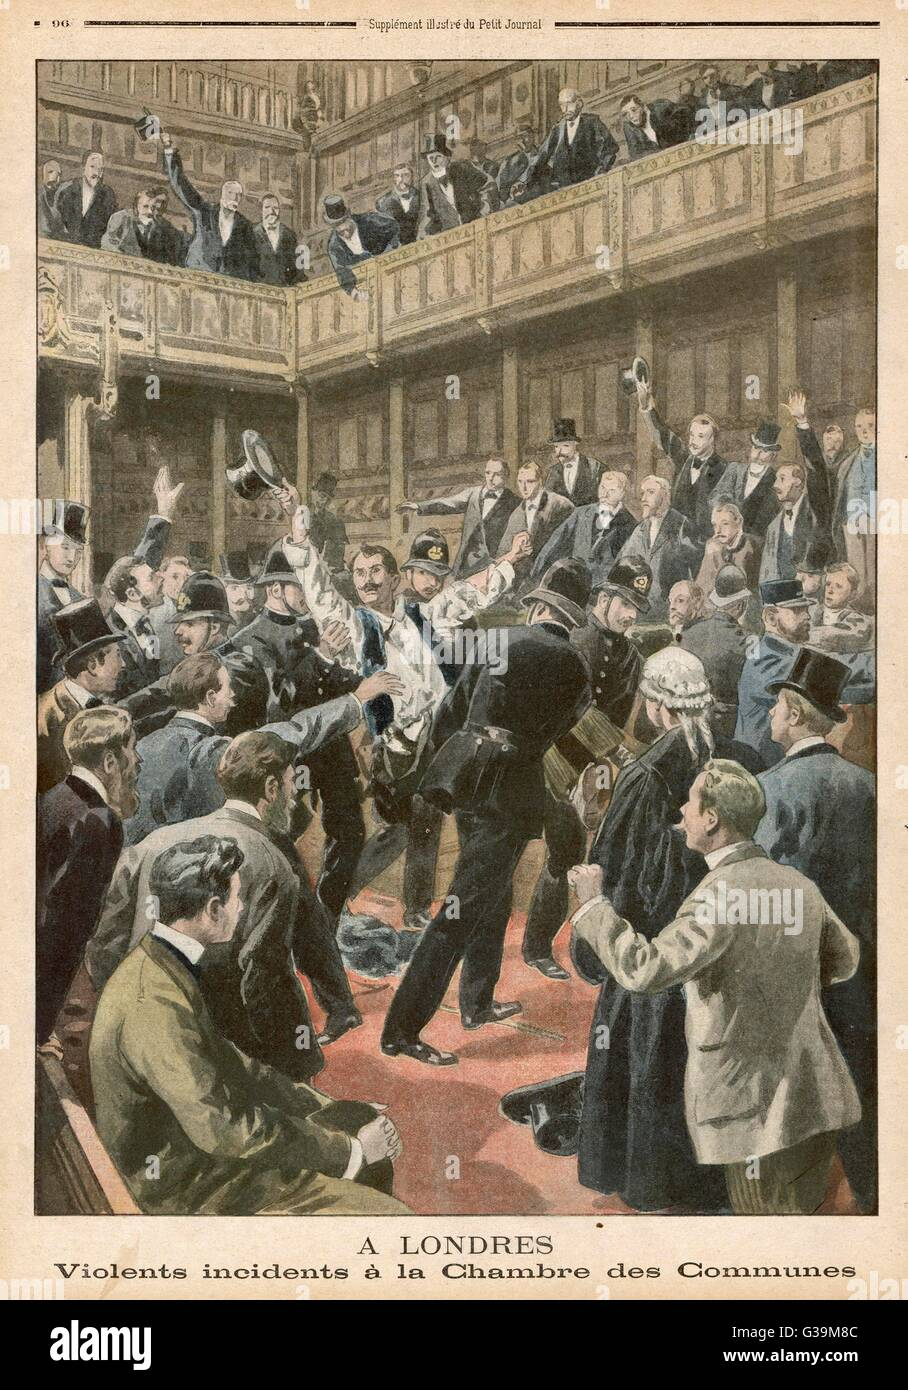 Irish MPs cause a disturbance  in the House of Commons         Date: 1901 - Stock Image